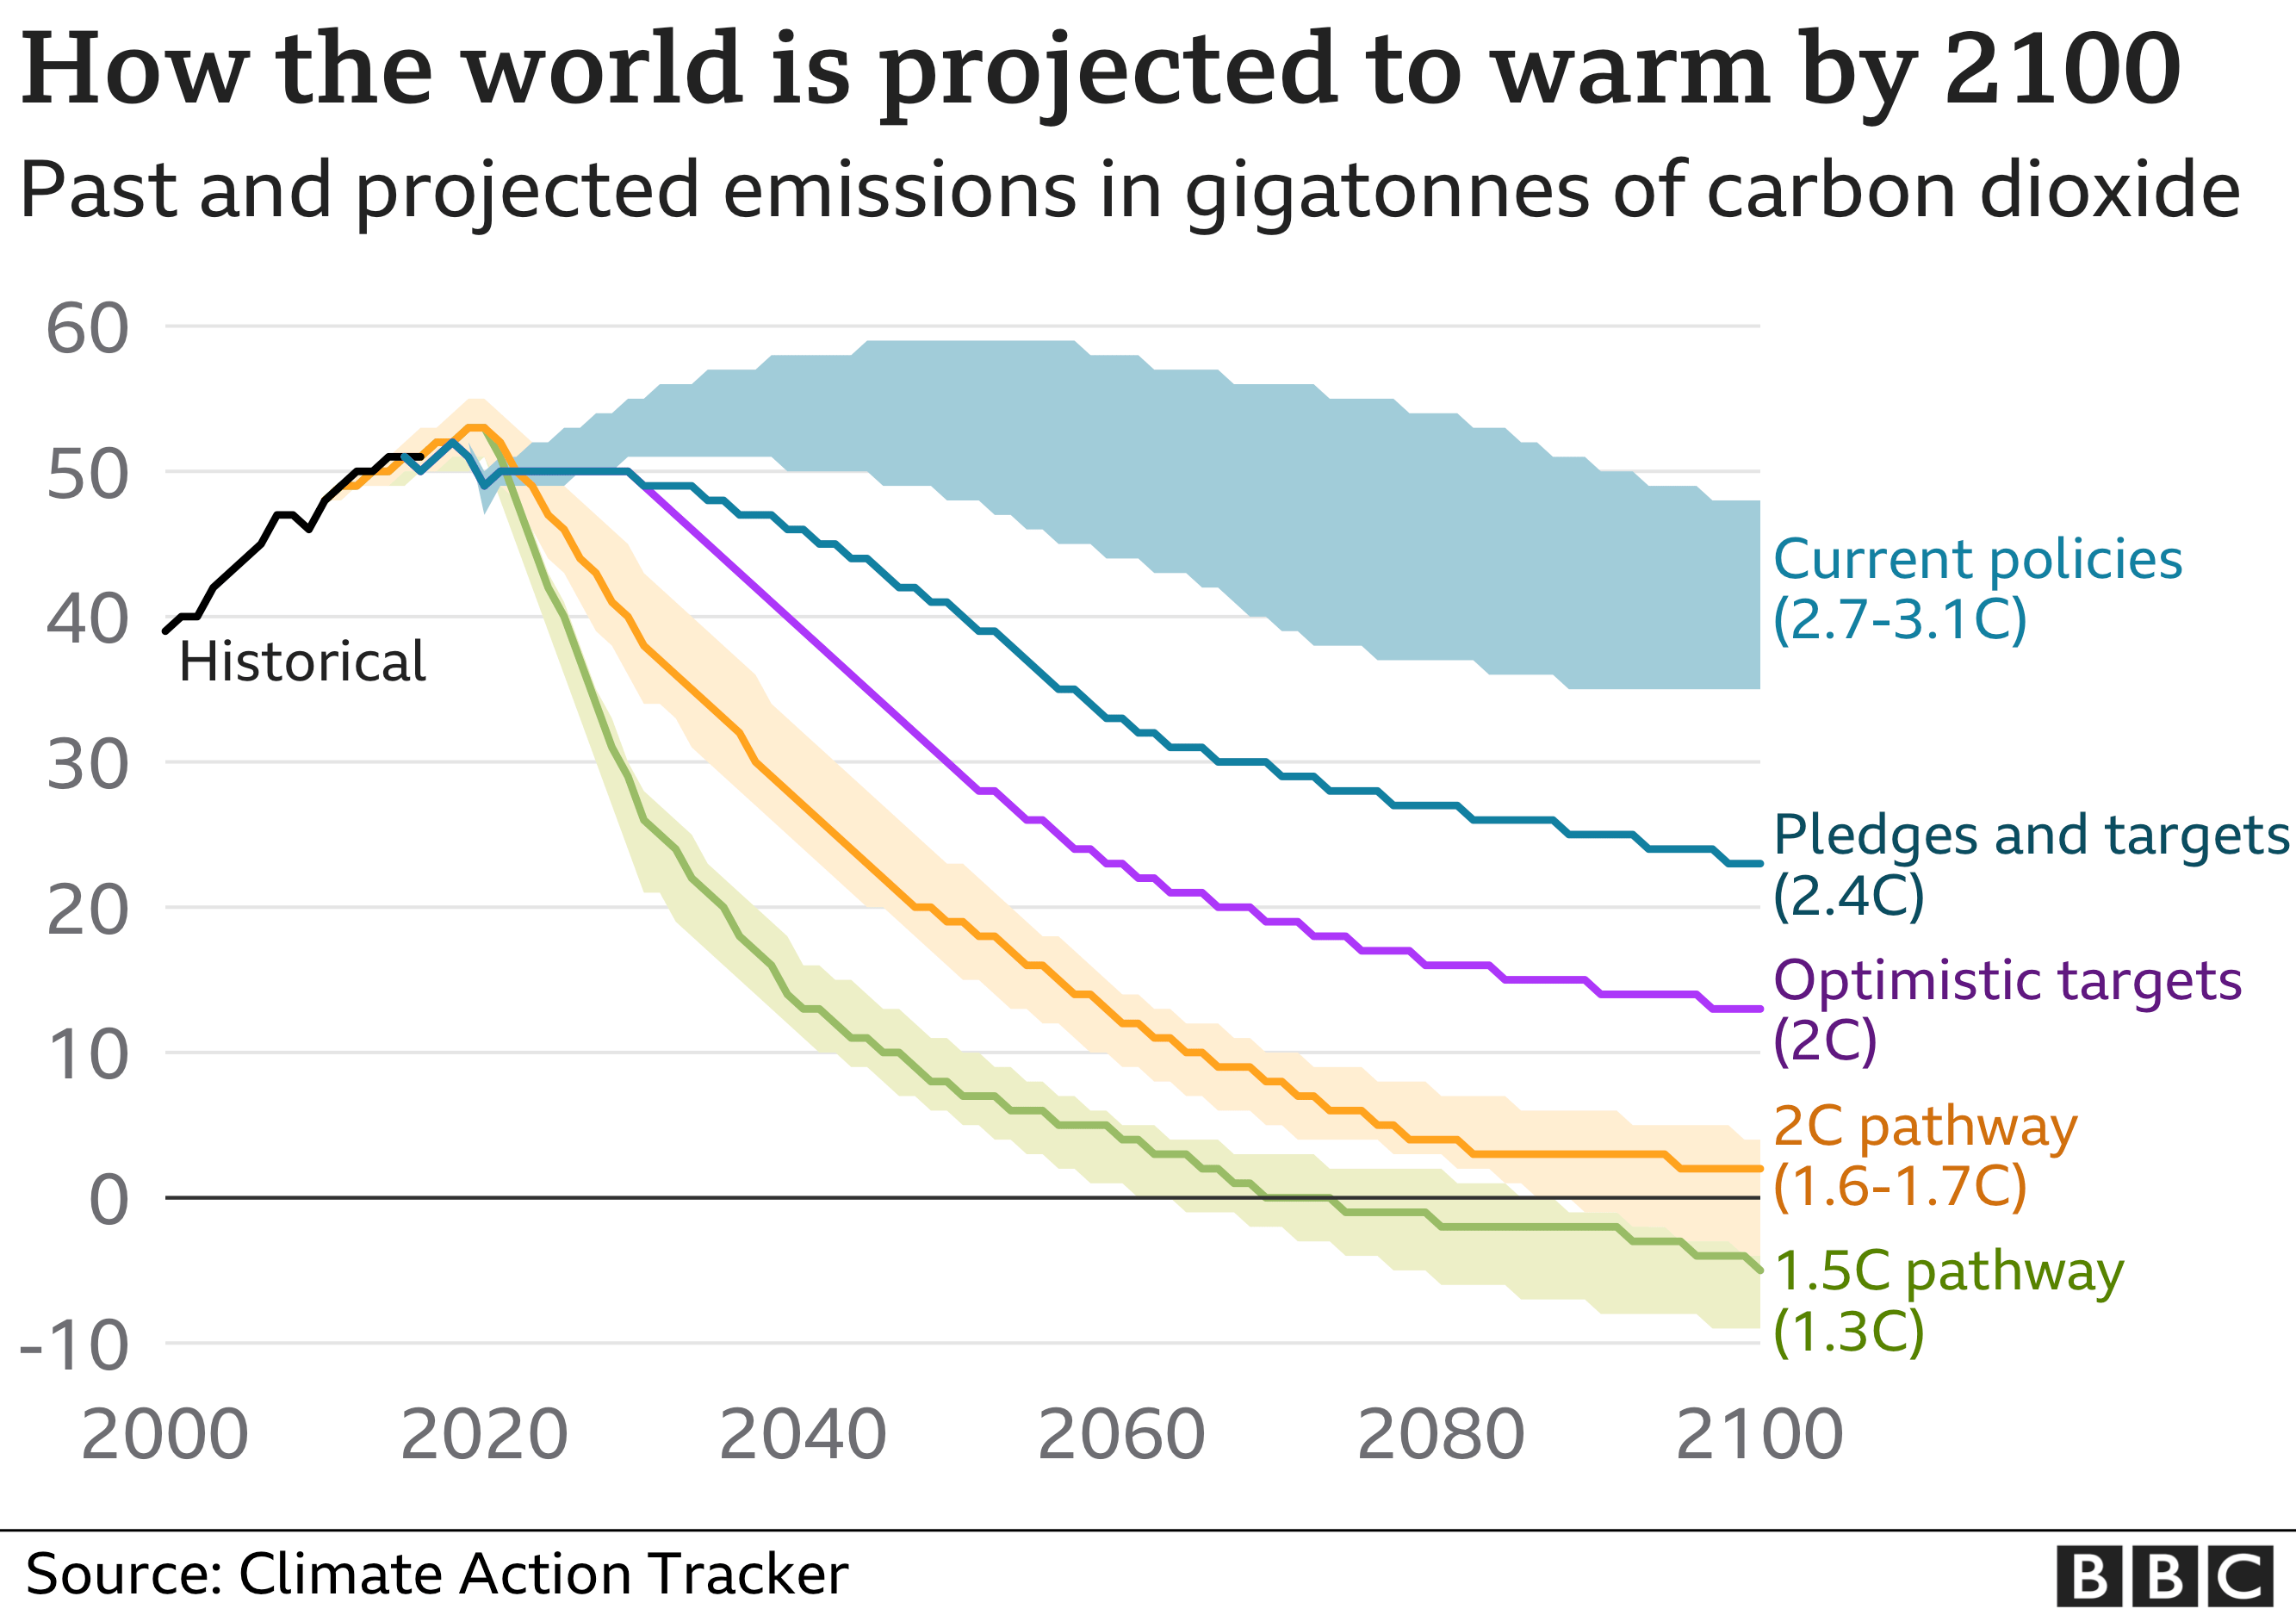 How the world is projected to warm by 2100